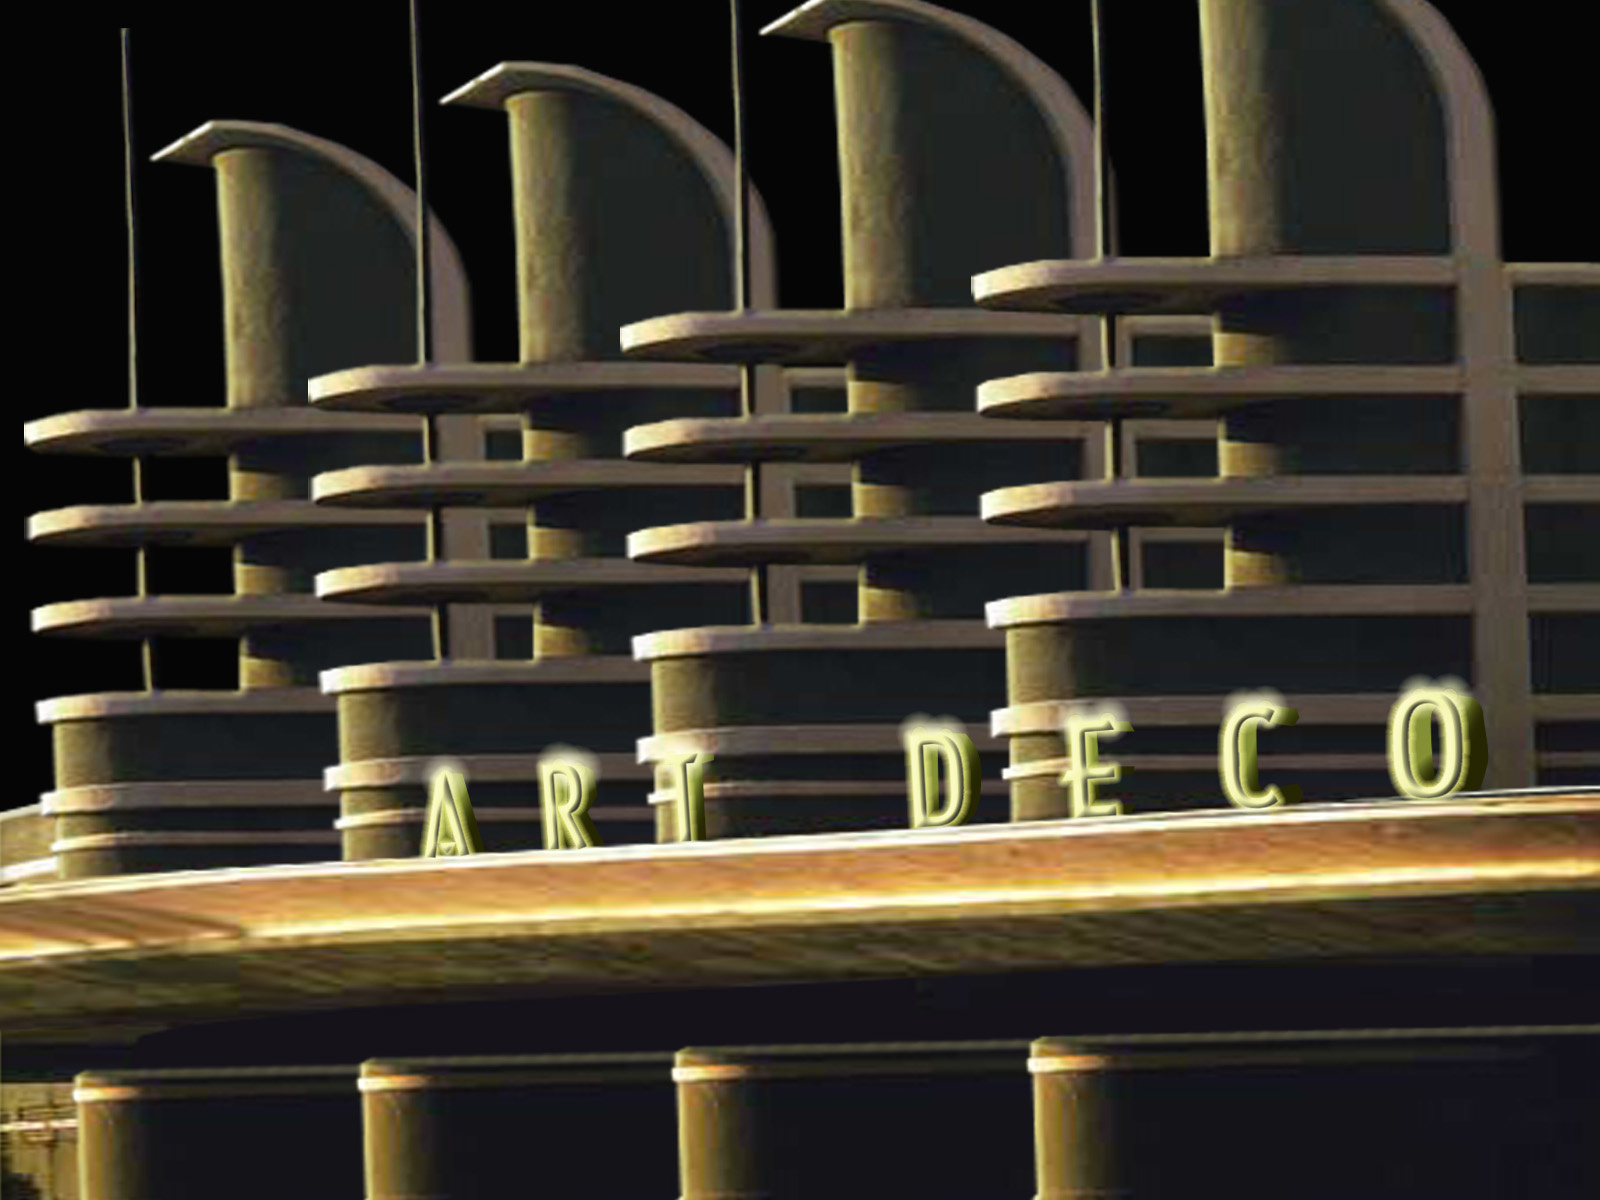 Art deco streamline moderne by jhihmoac caedes desktop wallpaper for Moderne deco